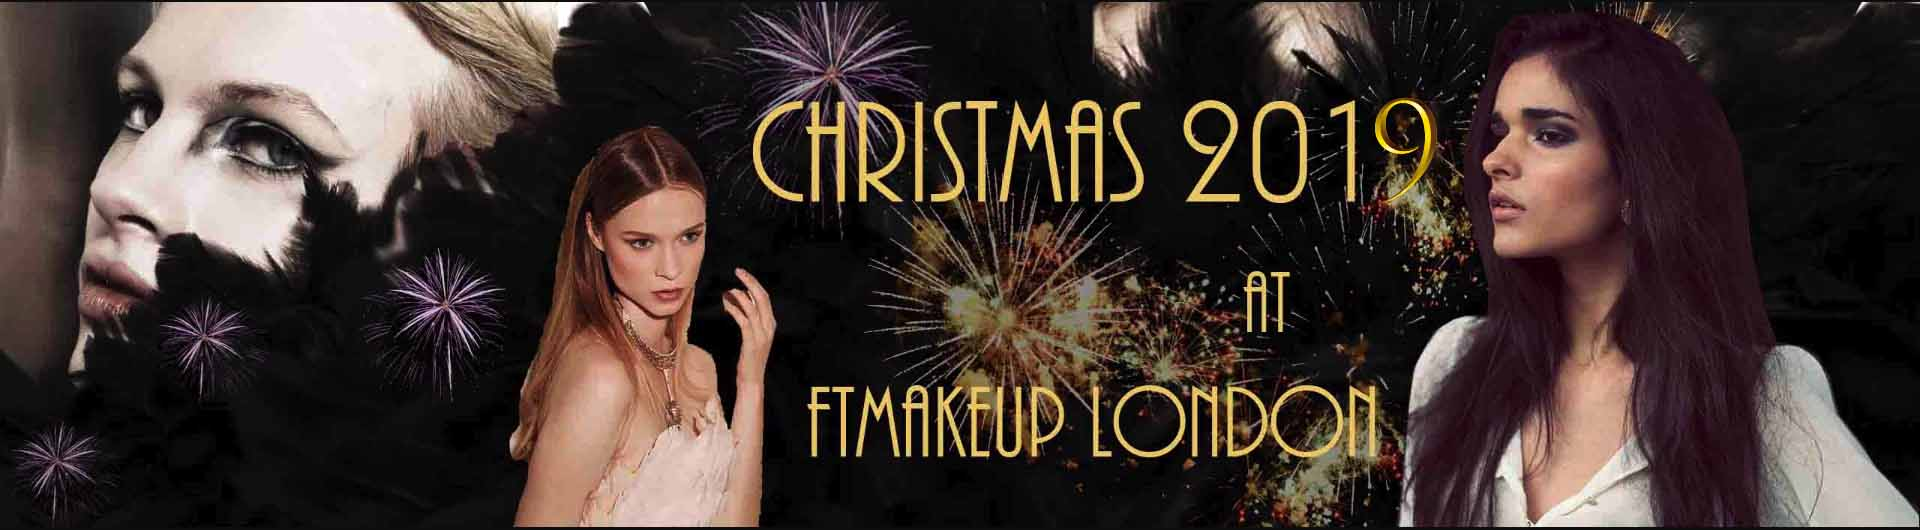 Freelance Christmas makeup artist for events and New Year